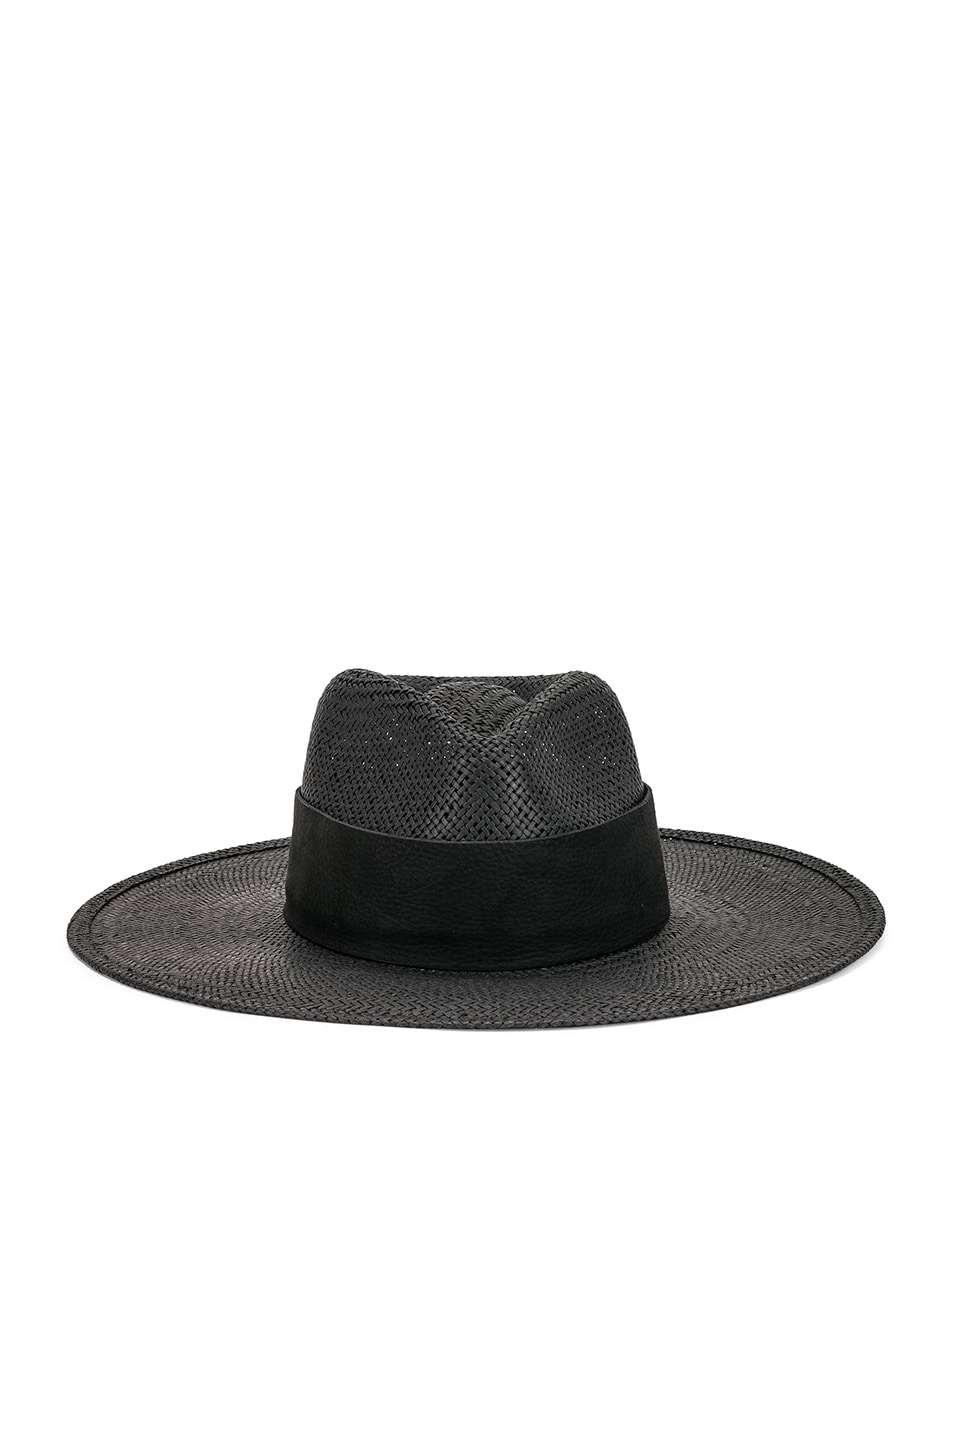 Janessa Leone Hats JANESSA LEONE ROSE PACKABLE HAT IN BLACK.